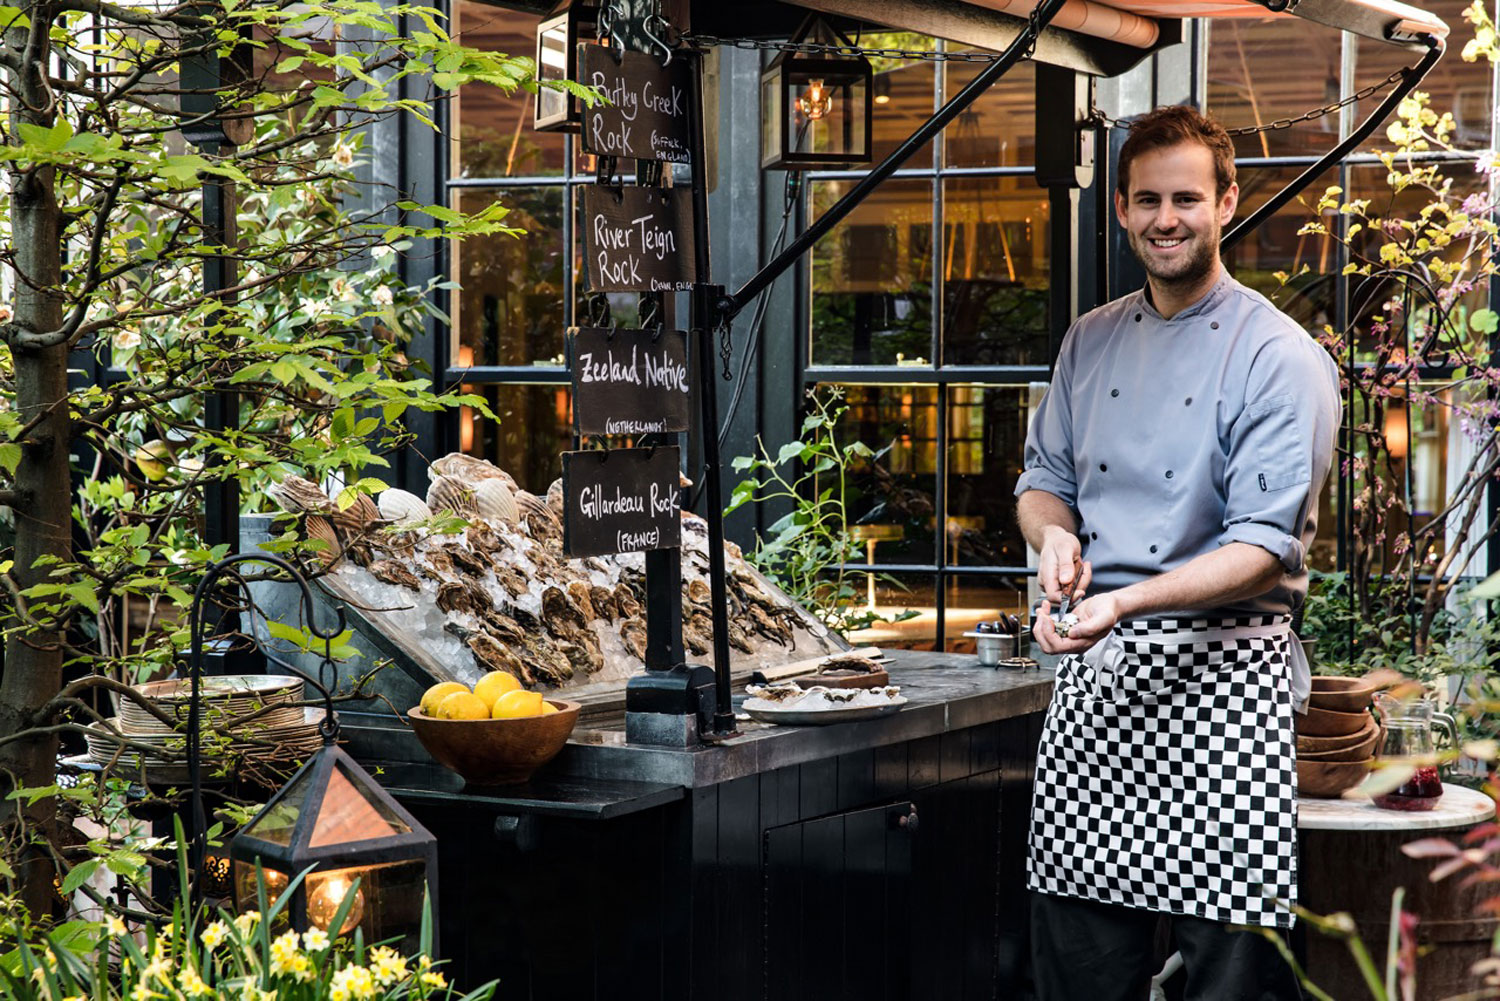 Oyster cart in garden of Chiltern Firehouse